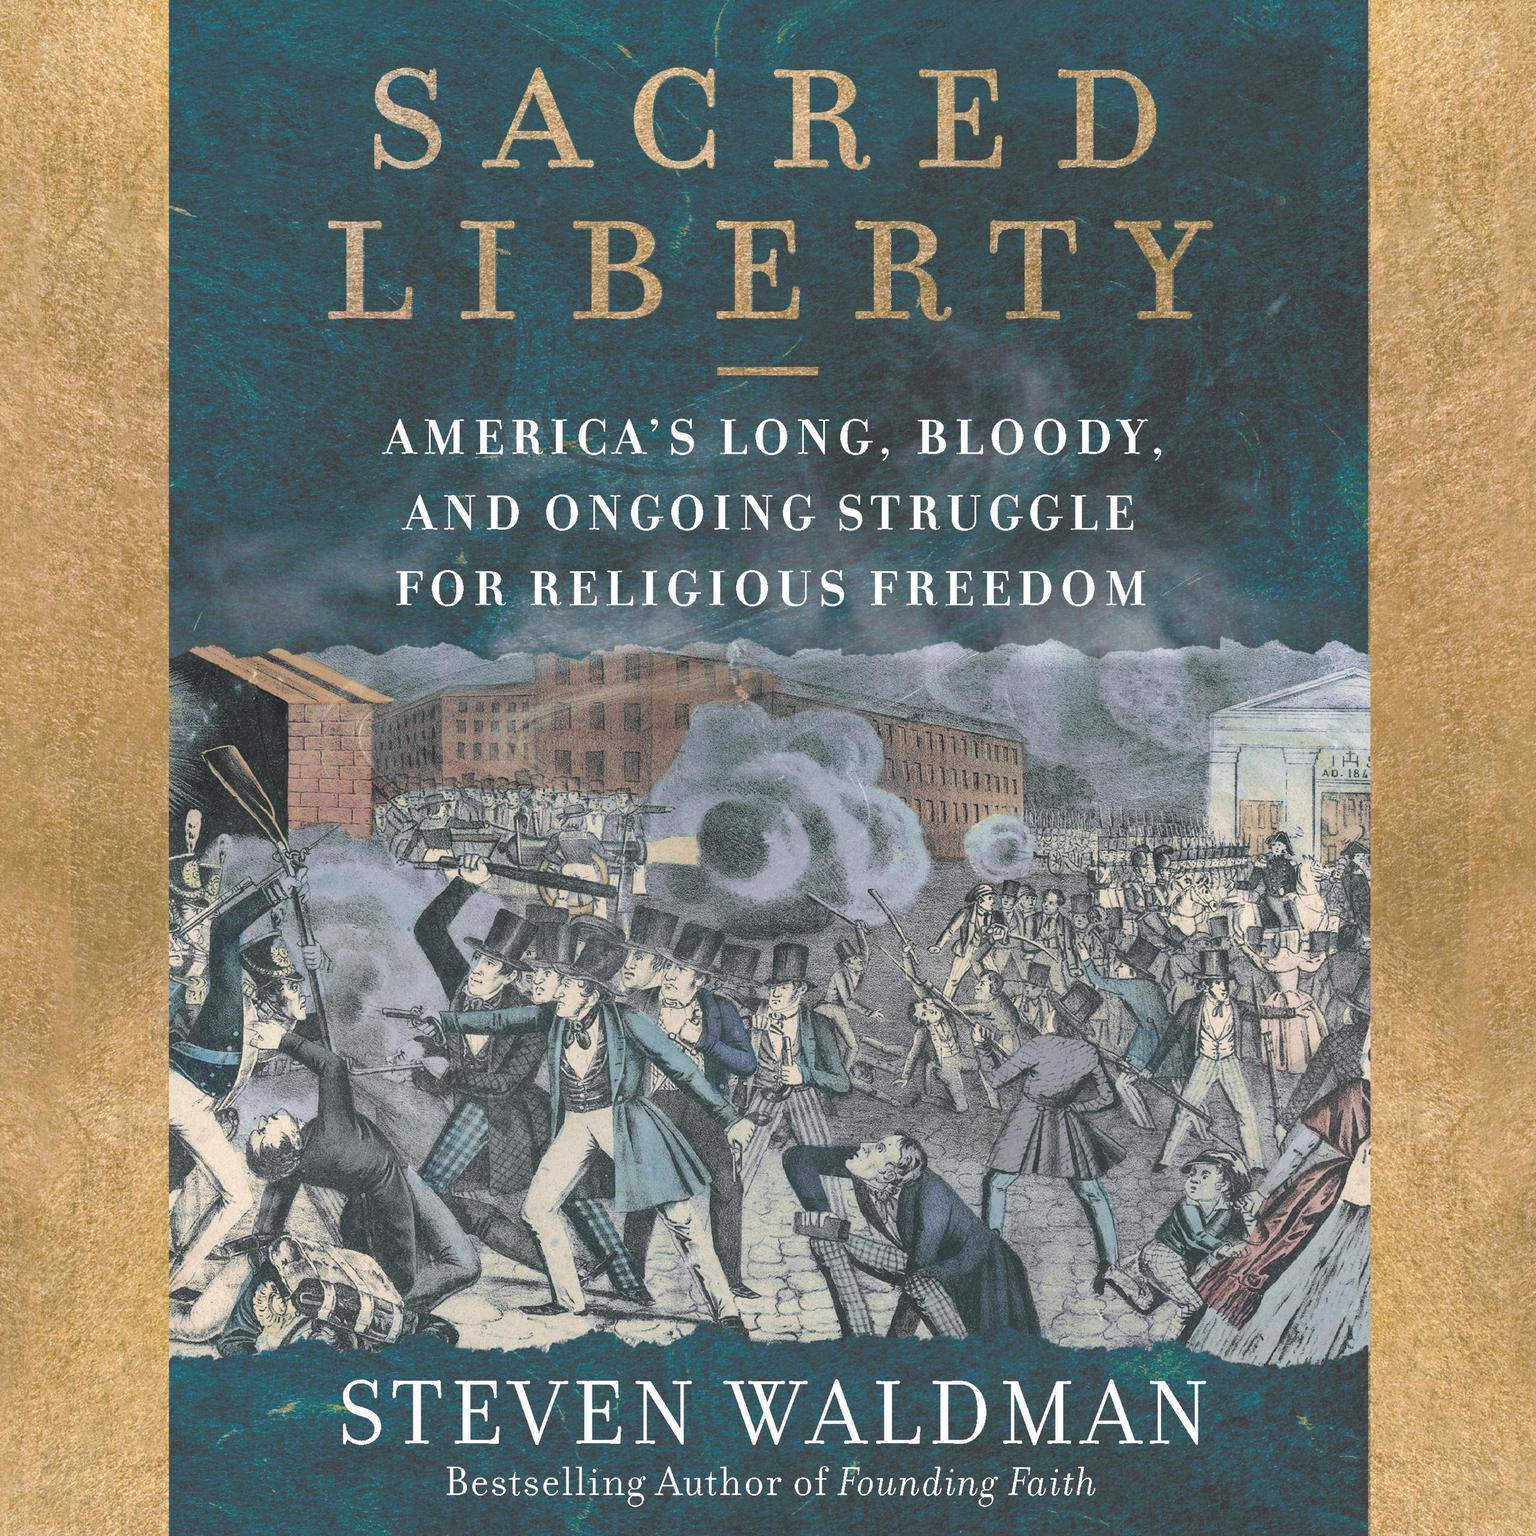 Printable Sacred Liberty: America's Long, Bloody, and Ongoing Struggle for Religious Freedom Audiobook Cover Art